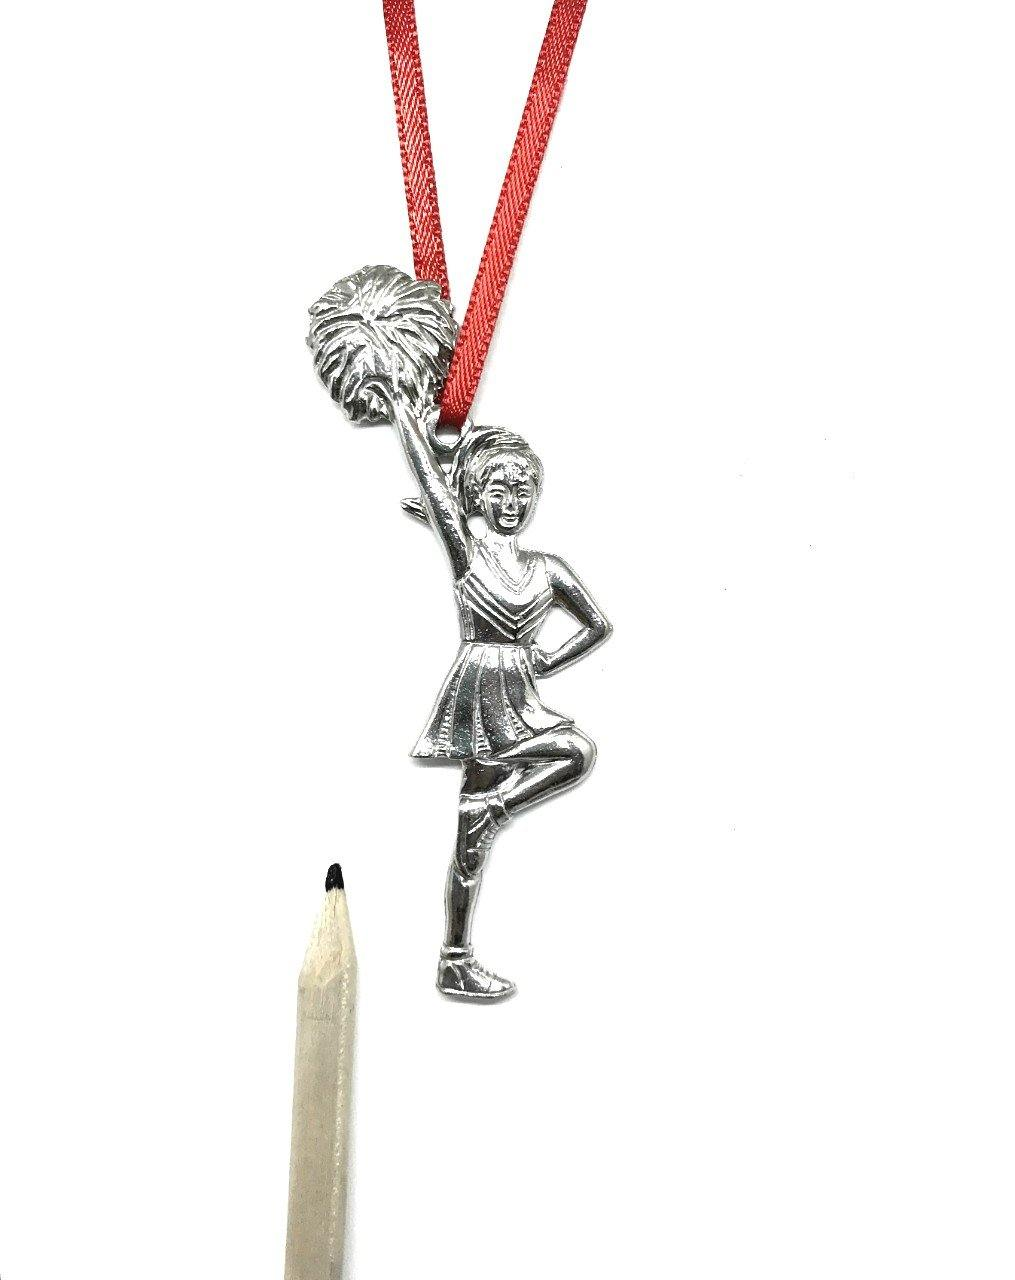 780 Cheerleader Cheer Dance Coach Team Keepsake Christmas Holiday Ornament Pewter - House of Morgan Pewter